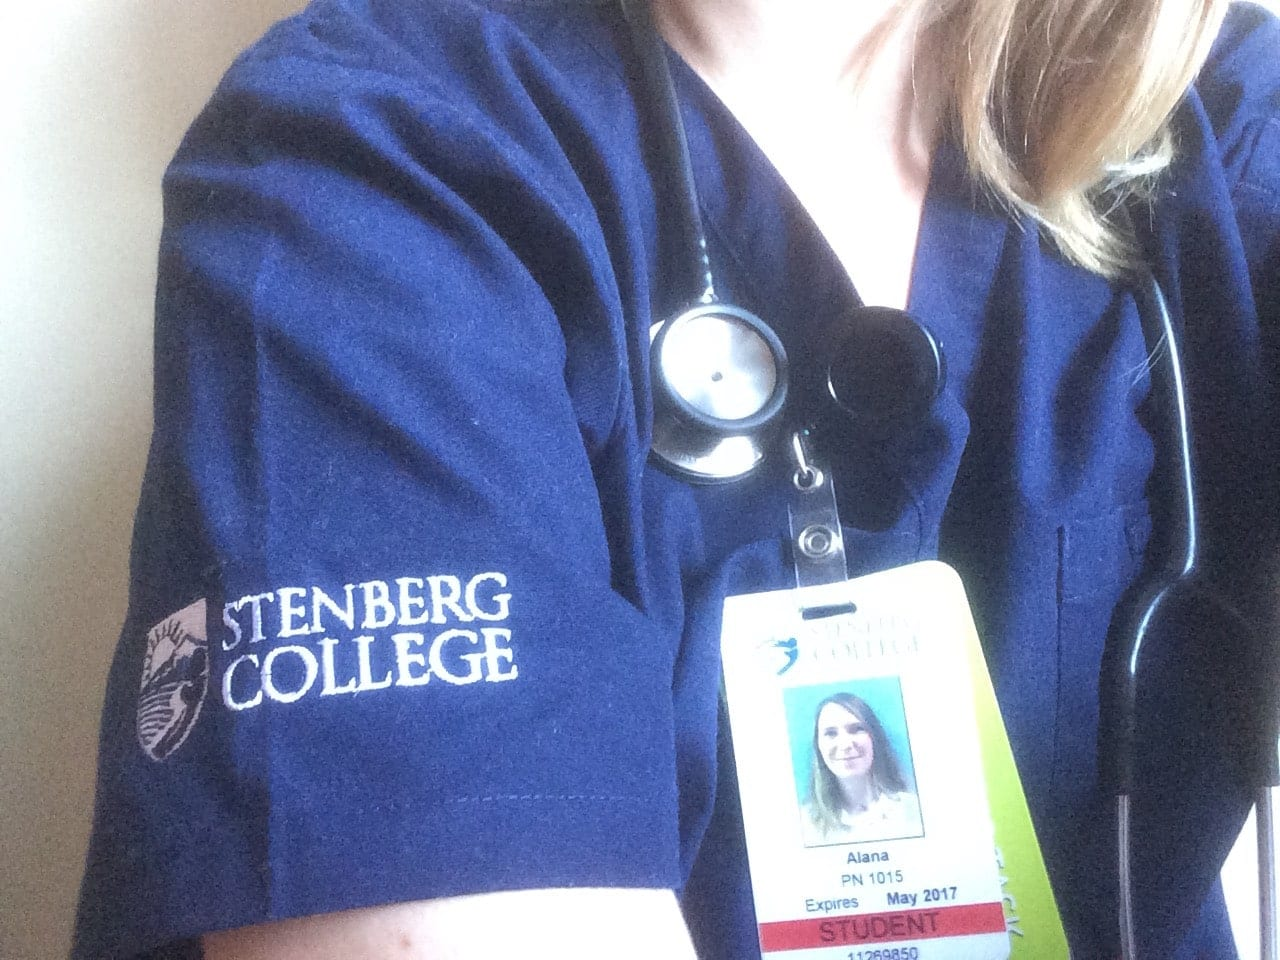 Alana wearing Stenberg's scrubs and student ID during her Preceptorship as a Practical Nurse.